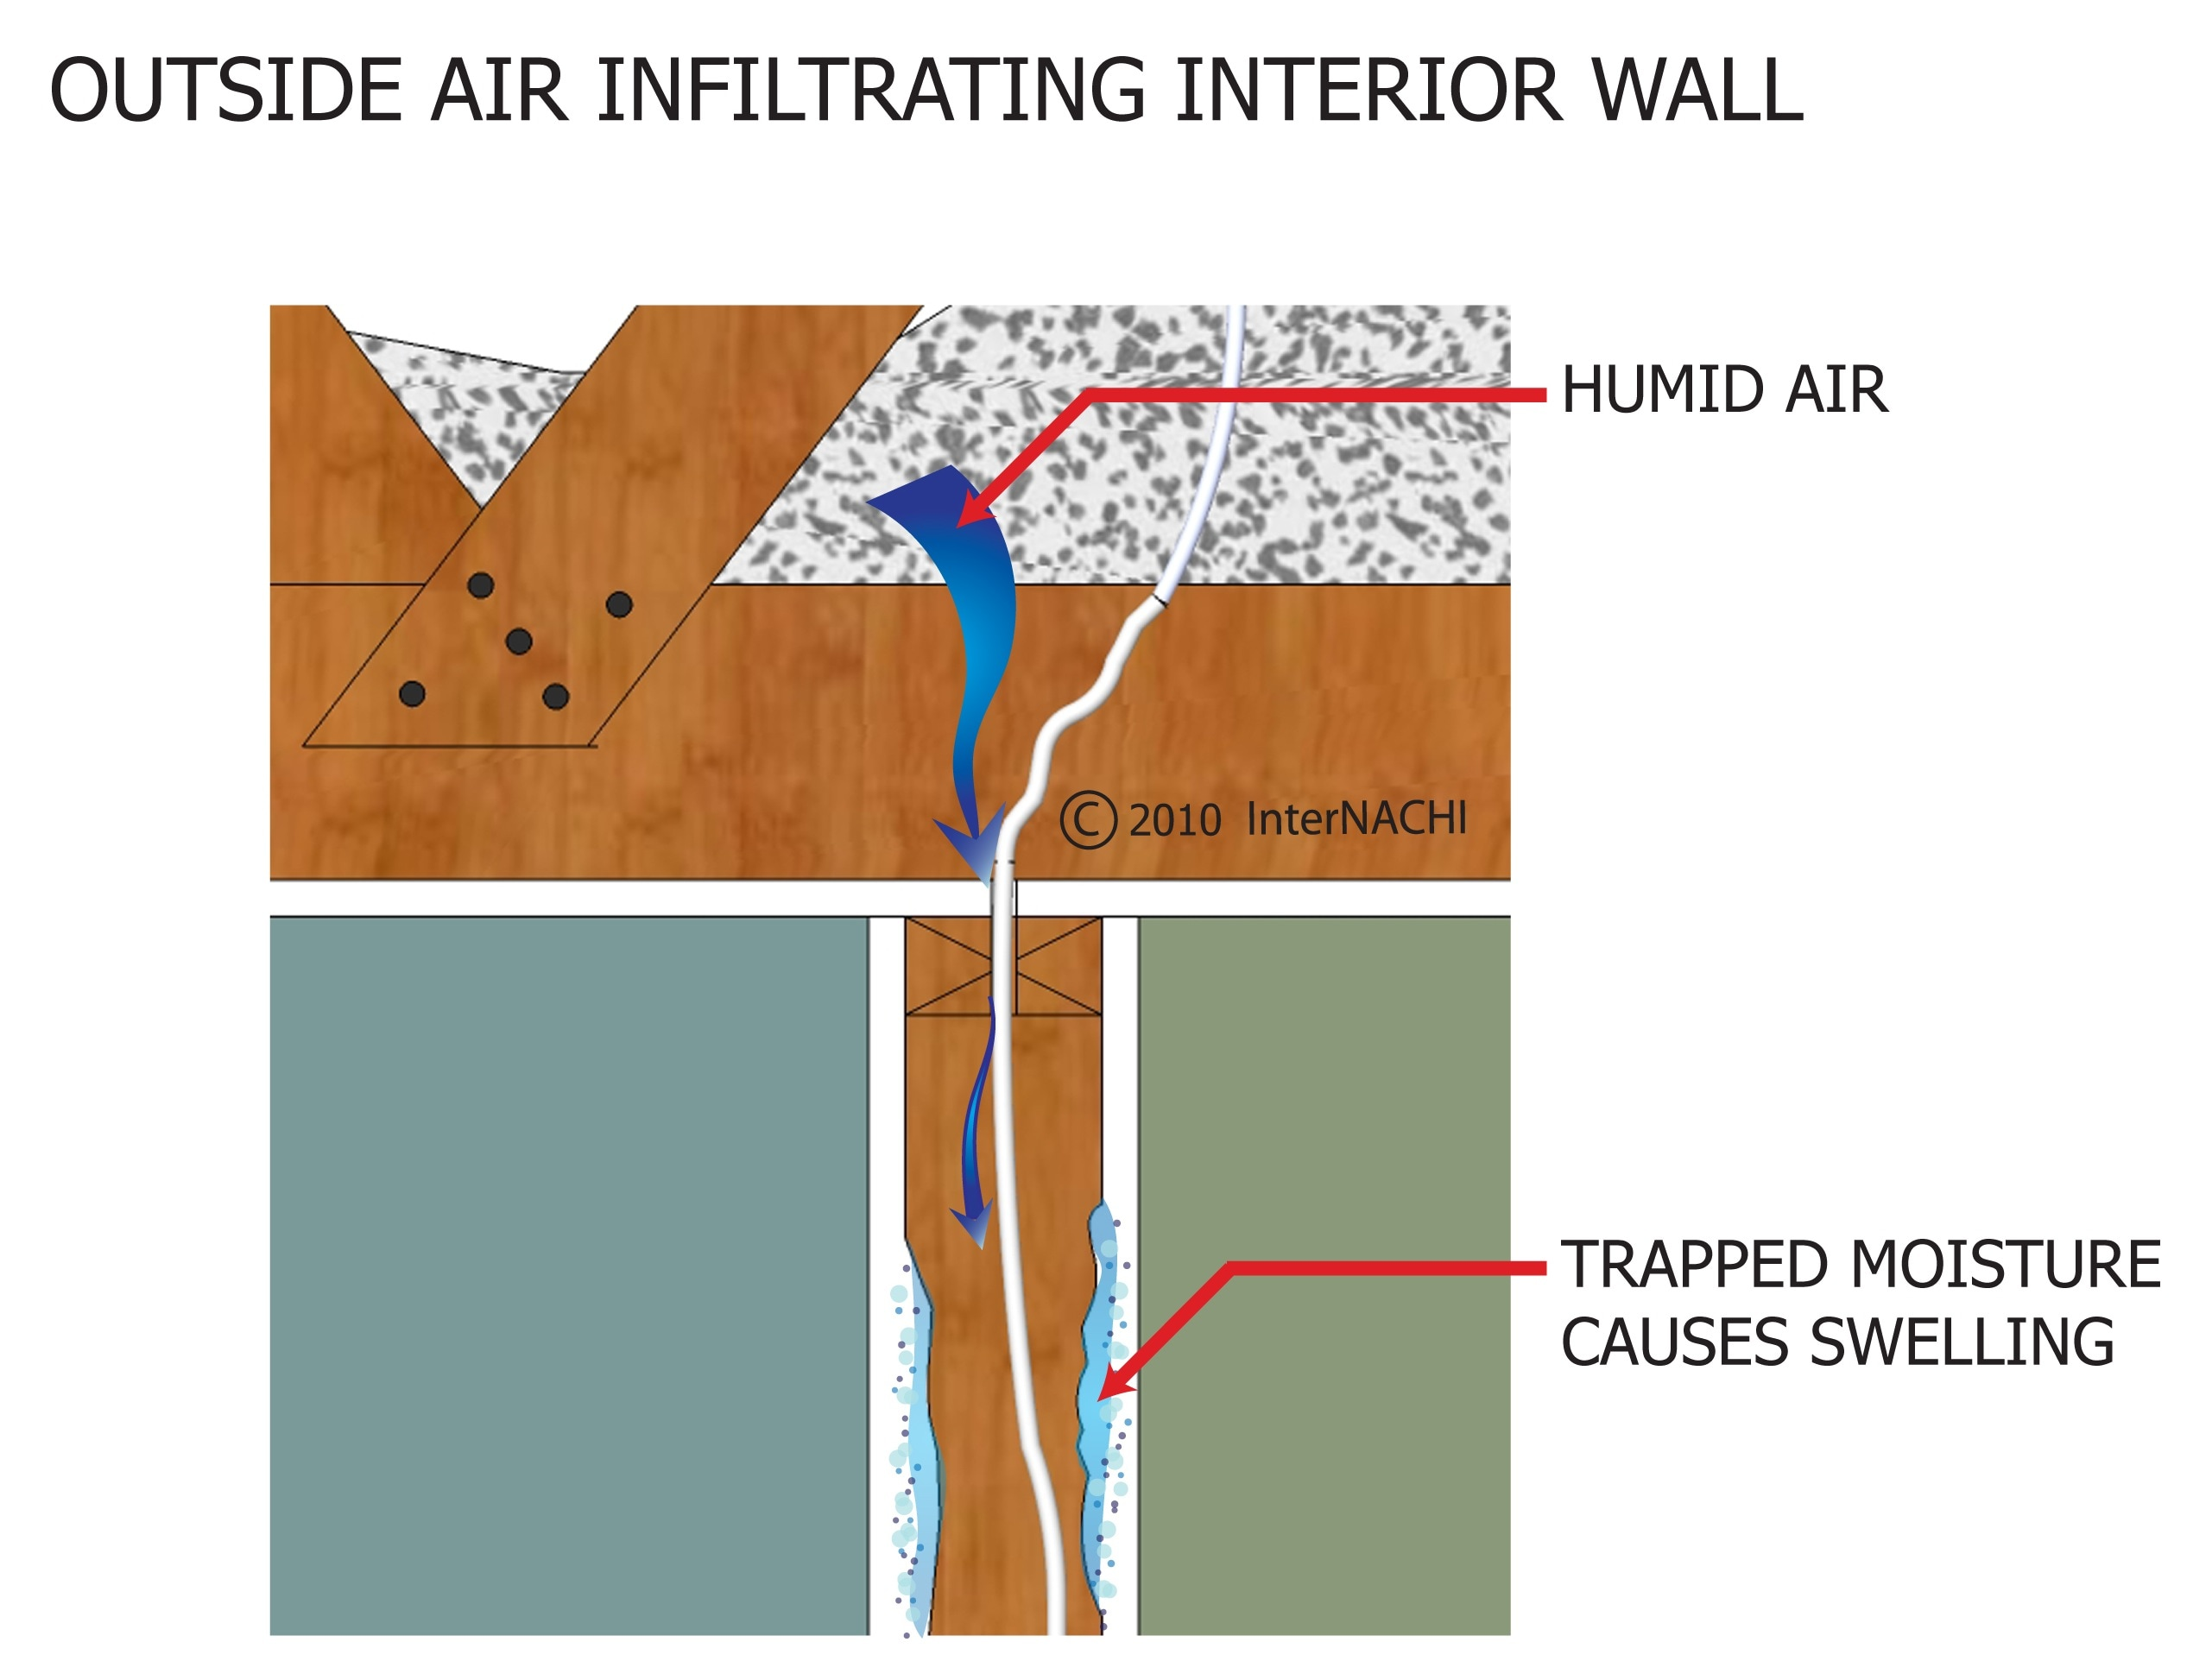 Outside air infiltrating interior wall.